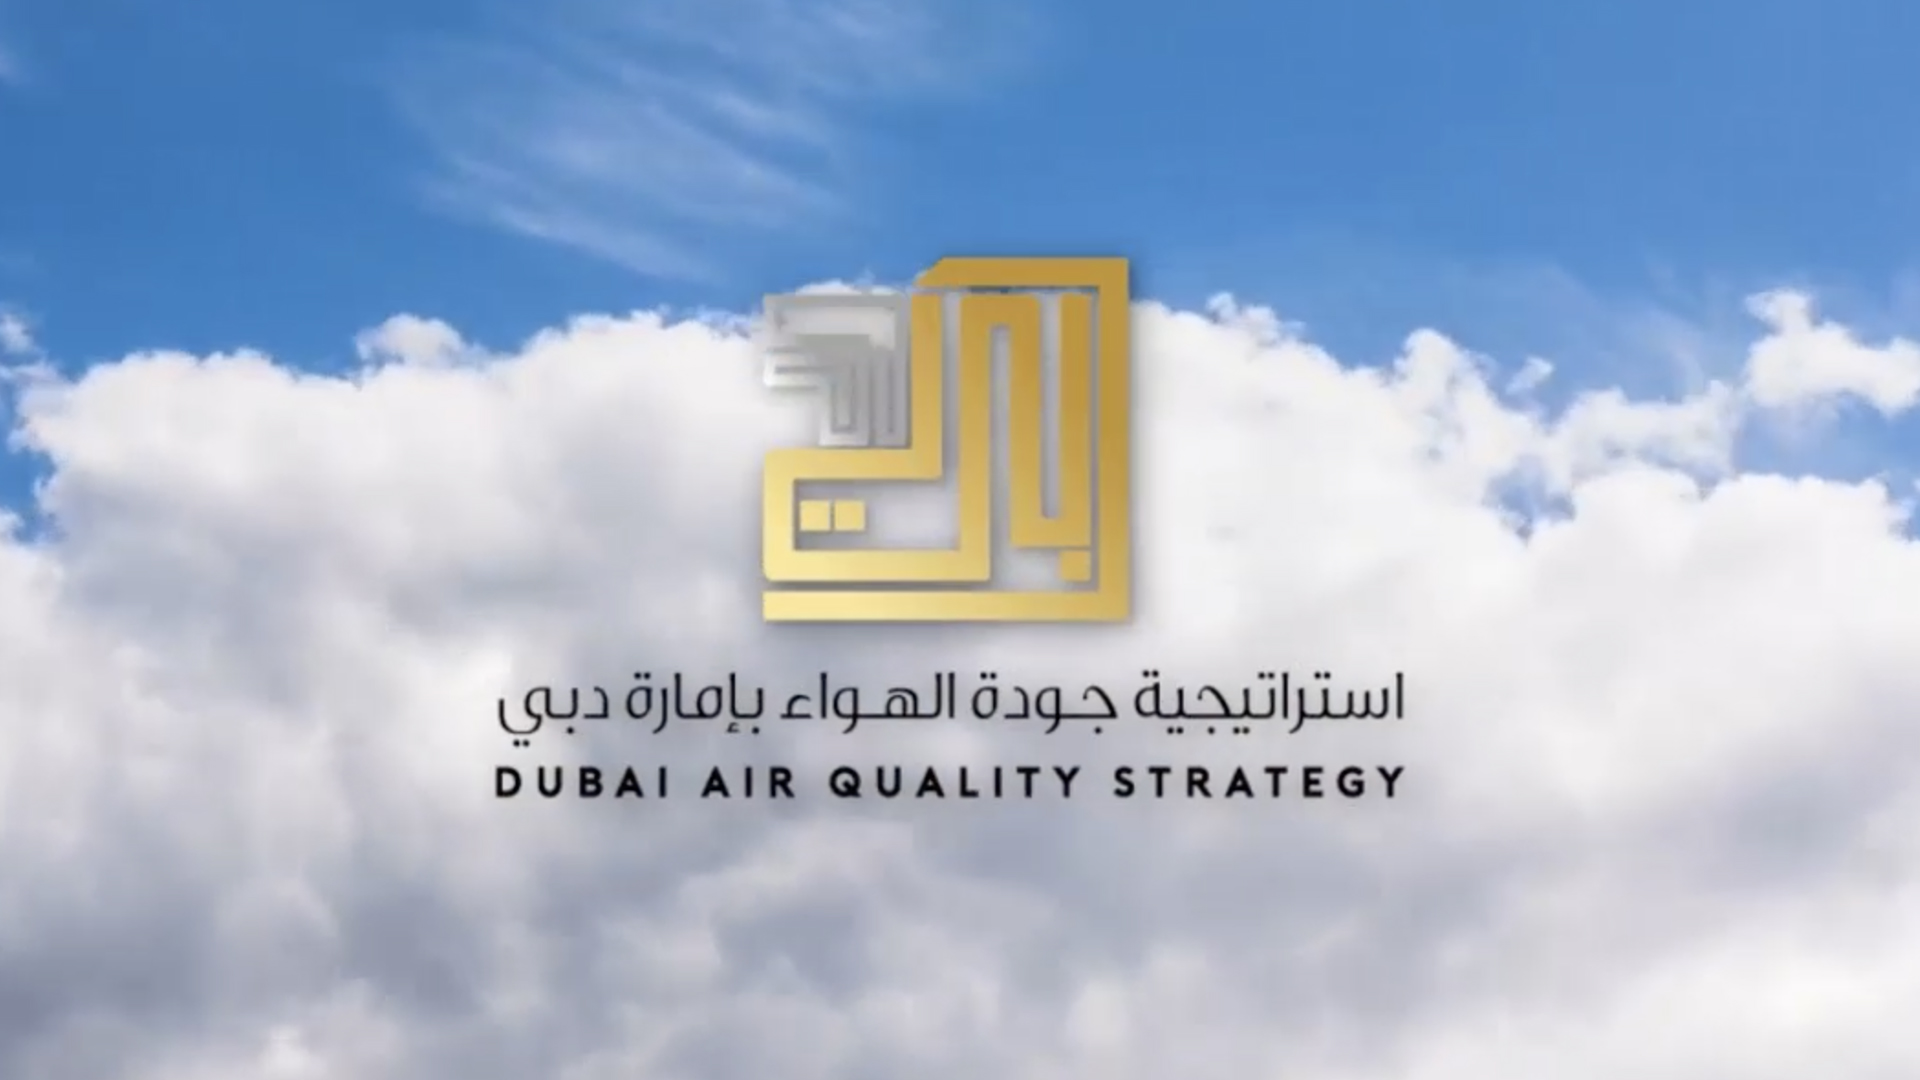 Dubai Air Quality Strategy